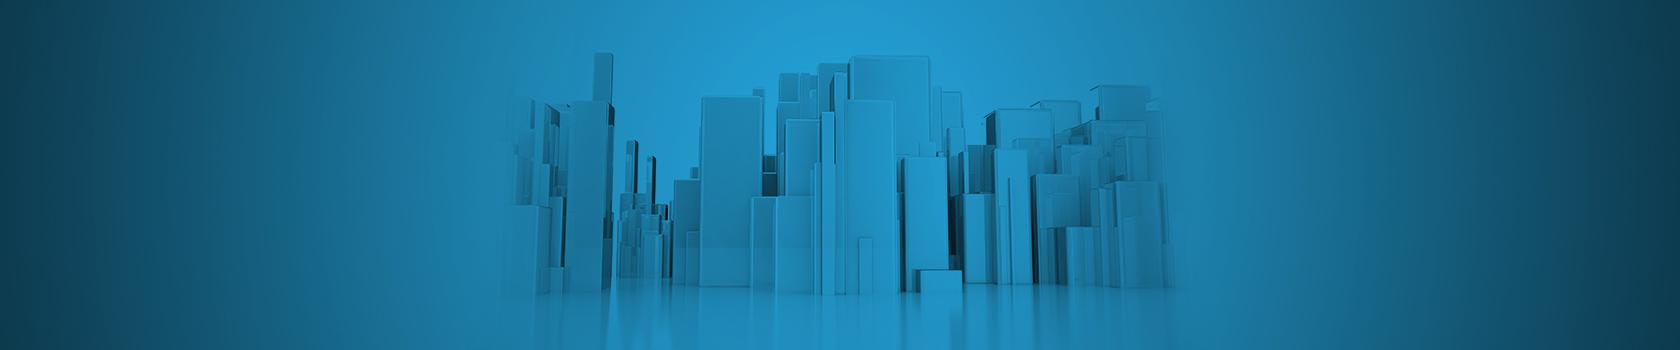 abstract 3d elements blue background